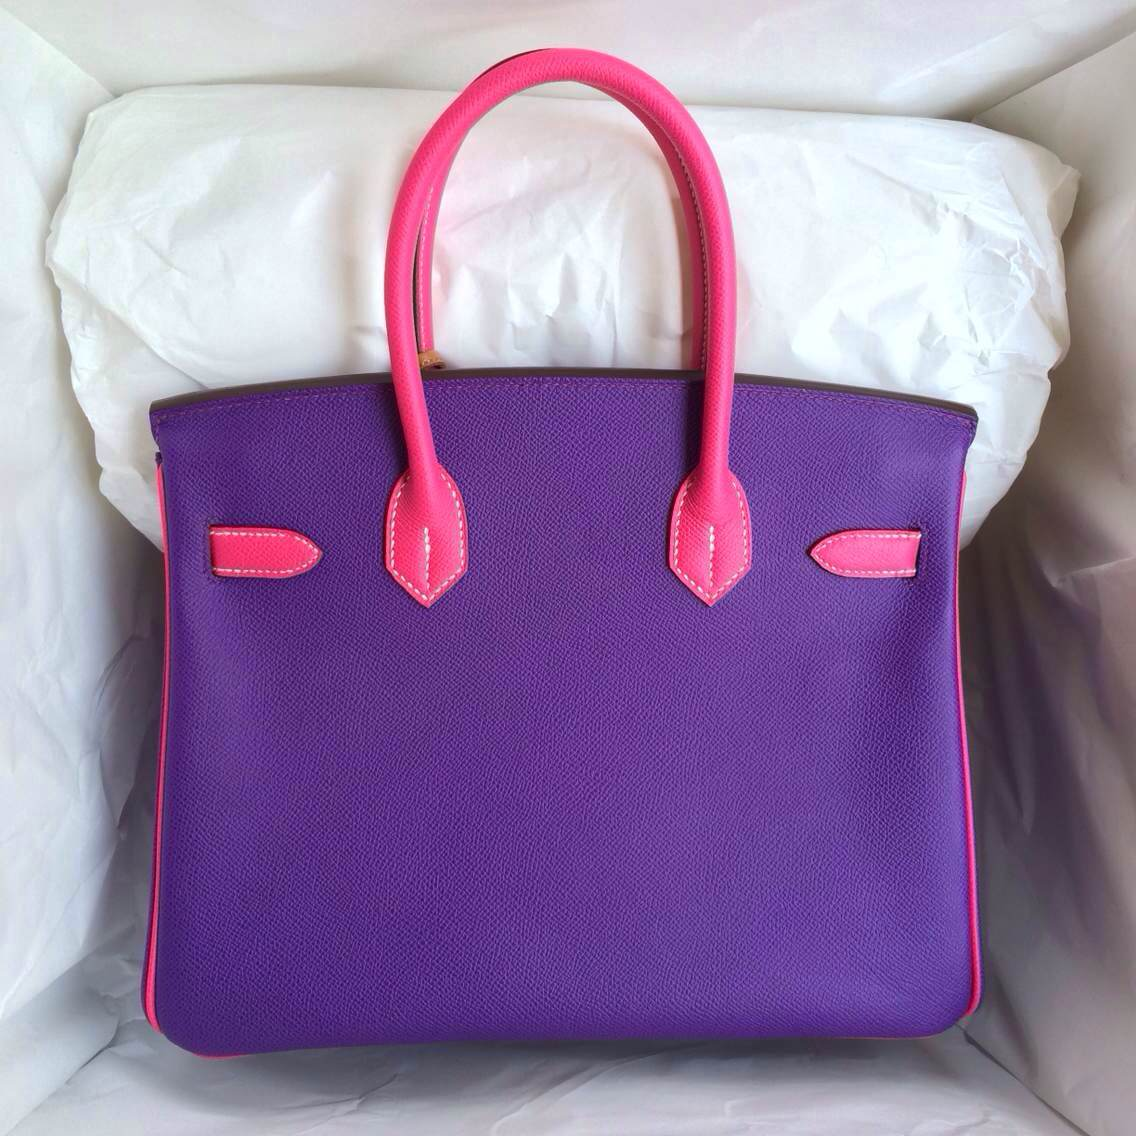 Cheap Hermes Birkin Bag 9W Ultraviolet/E5 Rose Tyrien Epsom Leather Gold Hardware